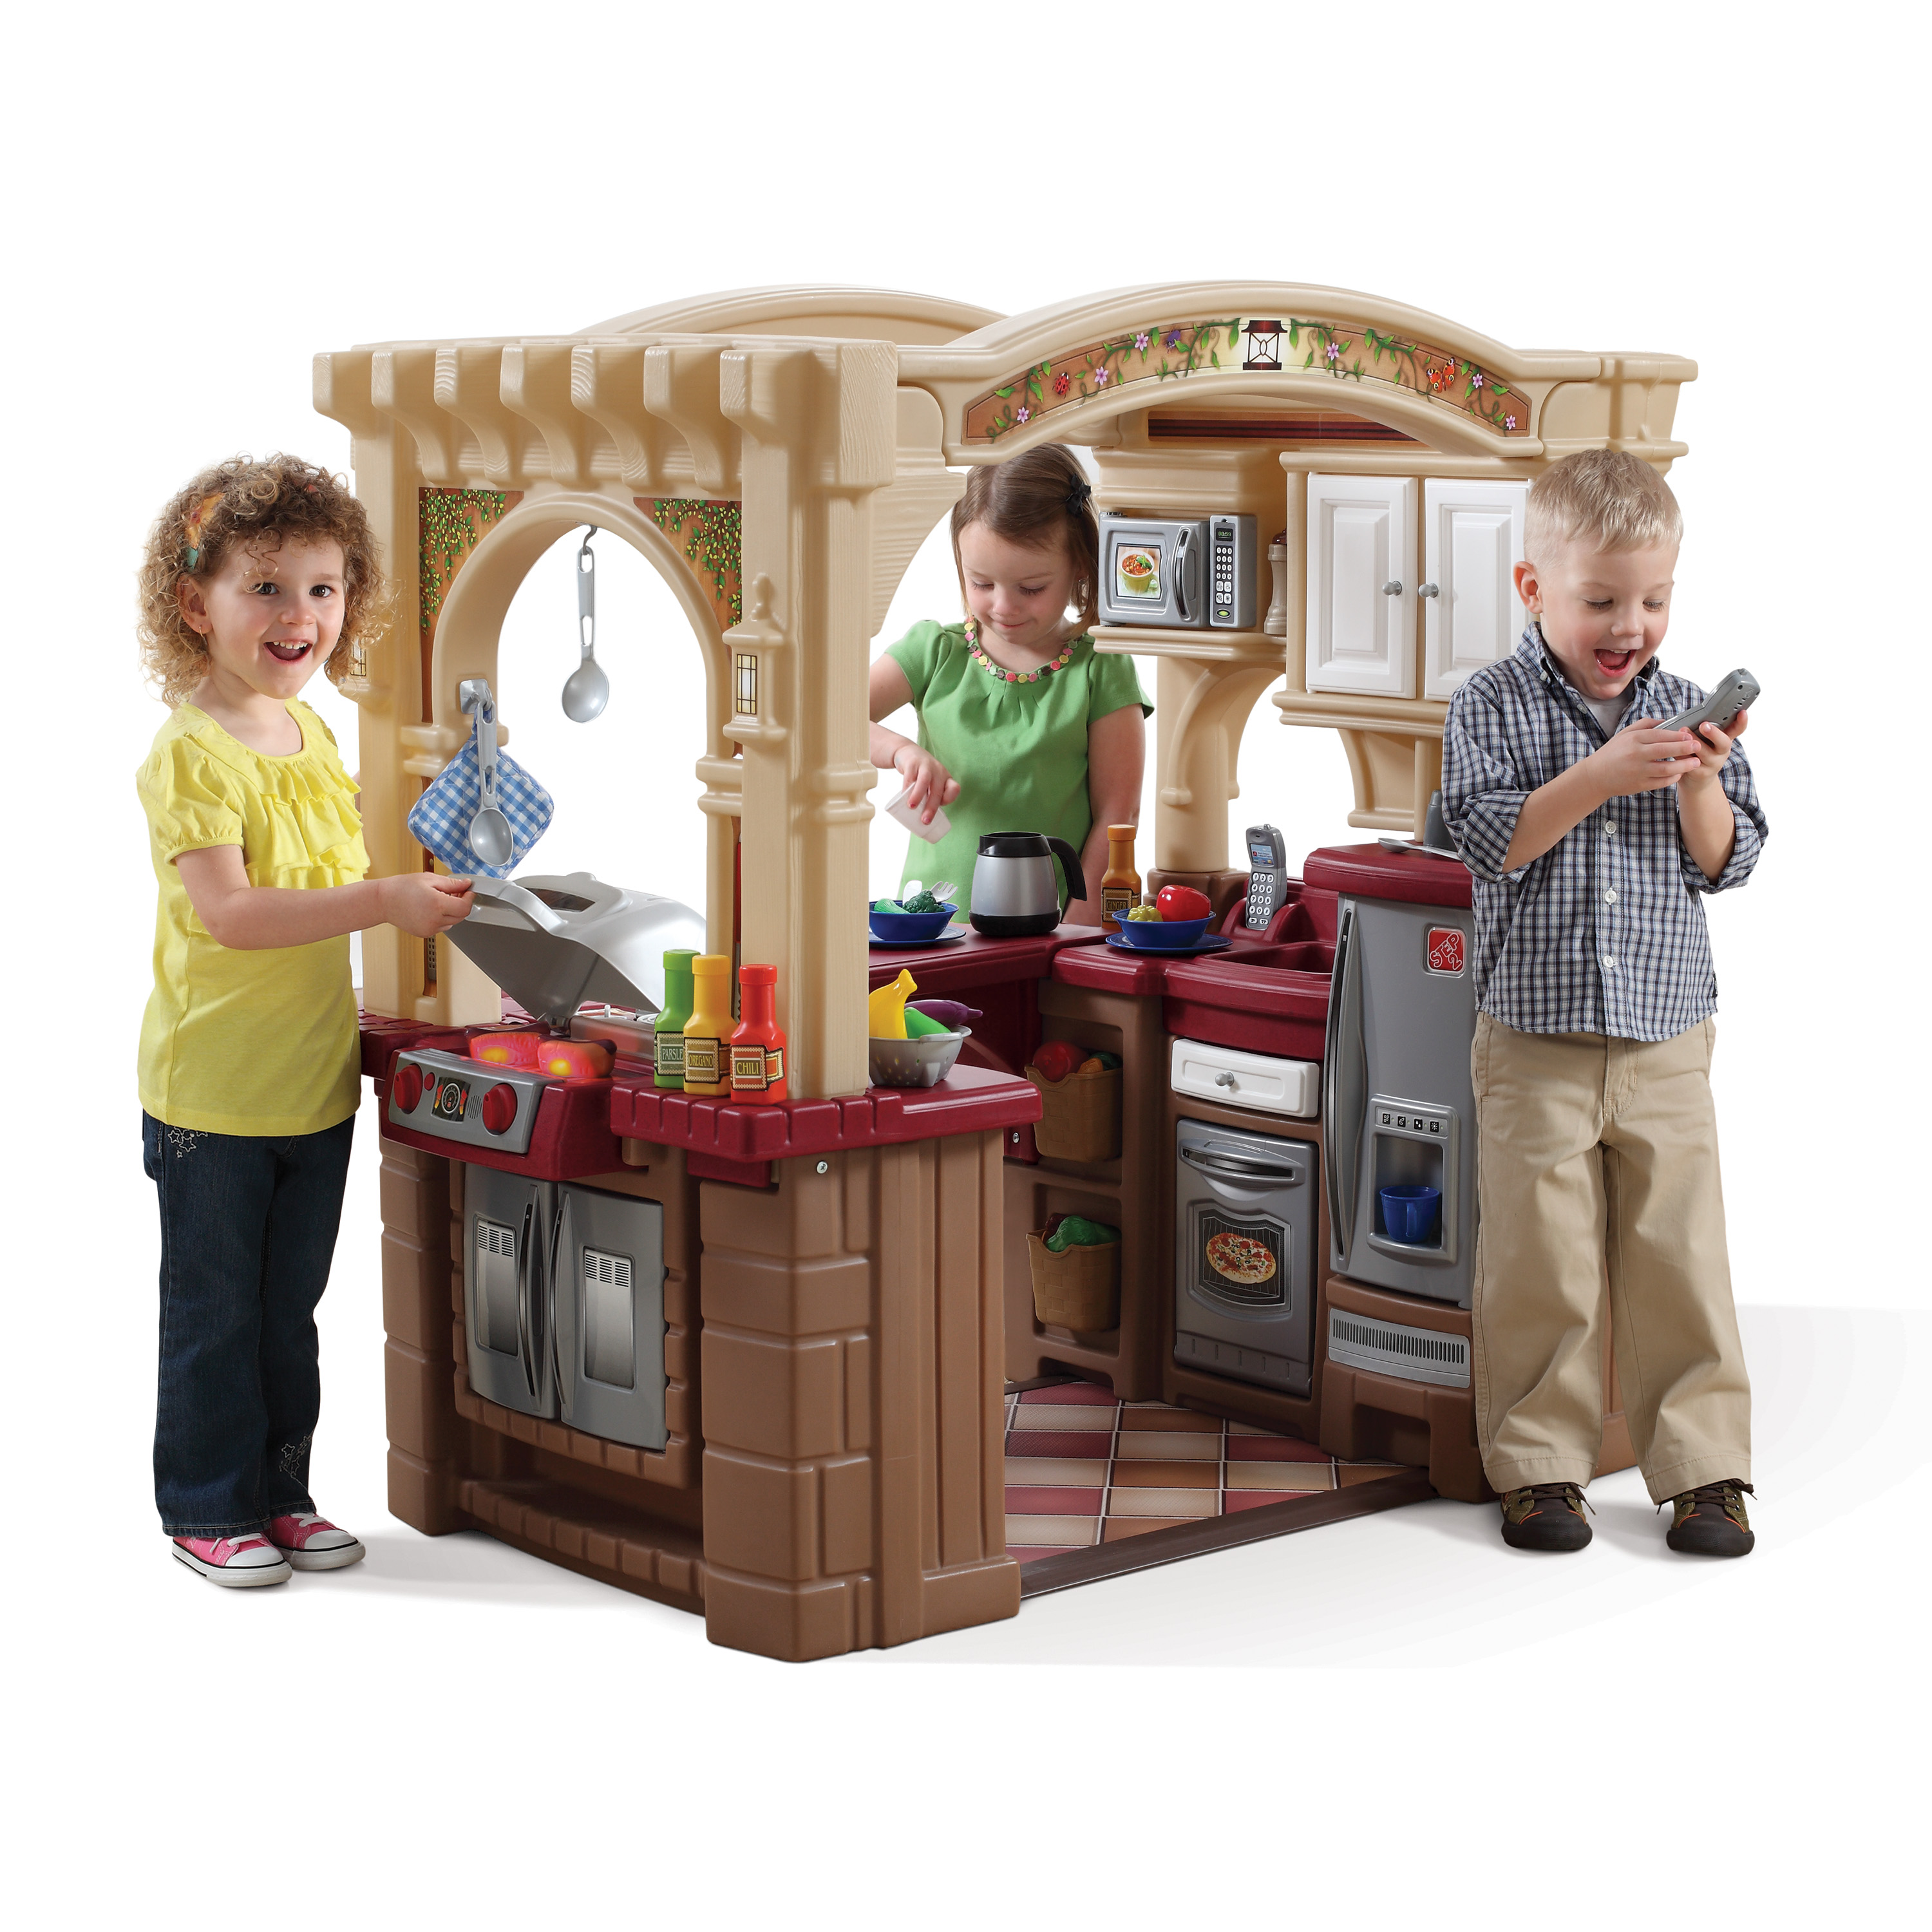 Step2 Grand Walk-In Play Kitchen & Grill with 103 Piece Food ...